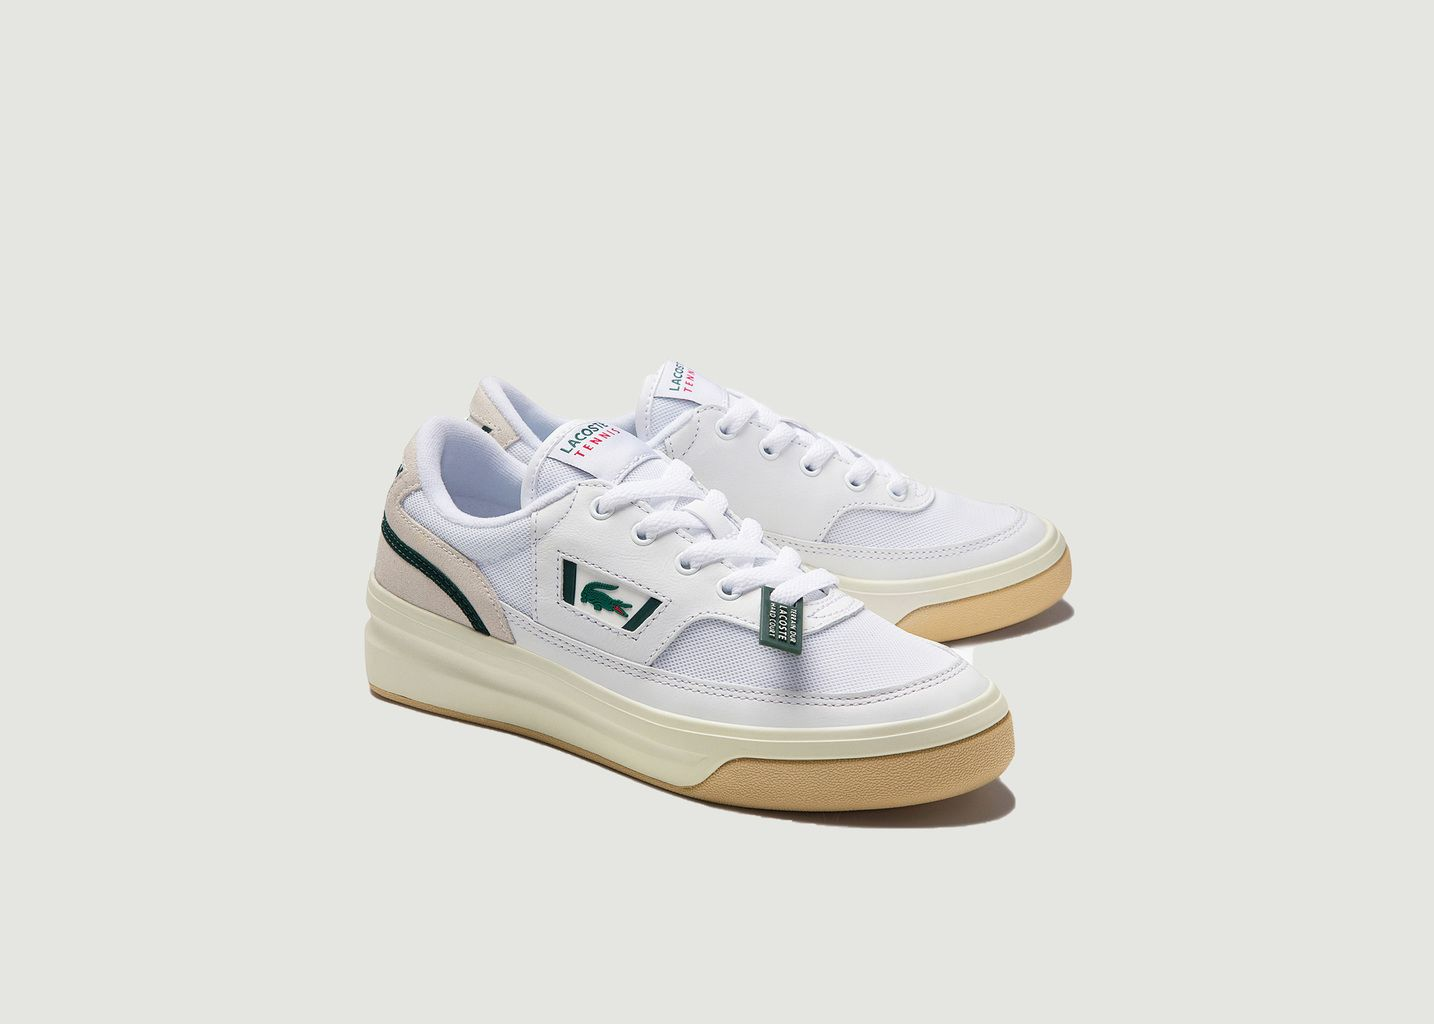 Sneakers G80 - Lacoste